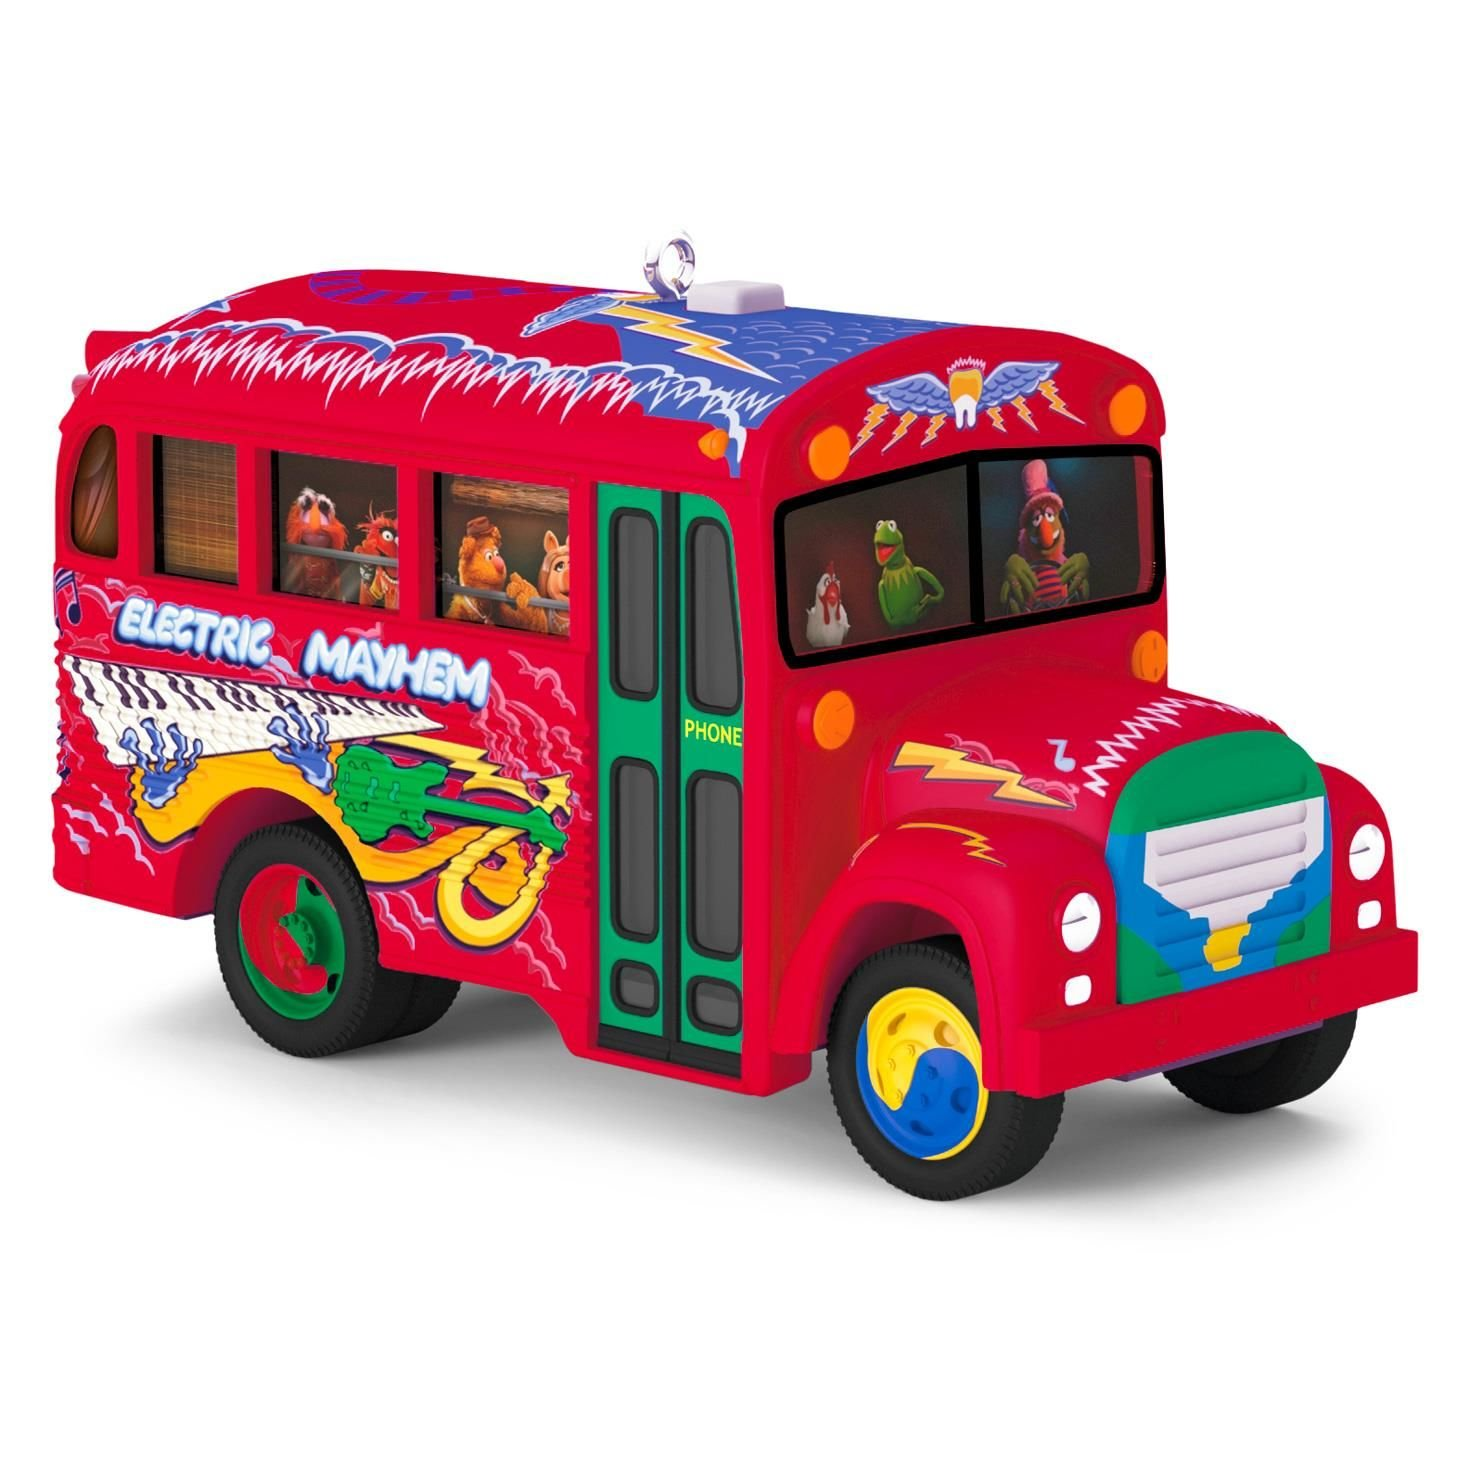 Hallmark 2016 Christmas Ornament The Muppets The Electric Mayhem Bus Musical ...